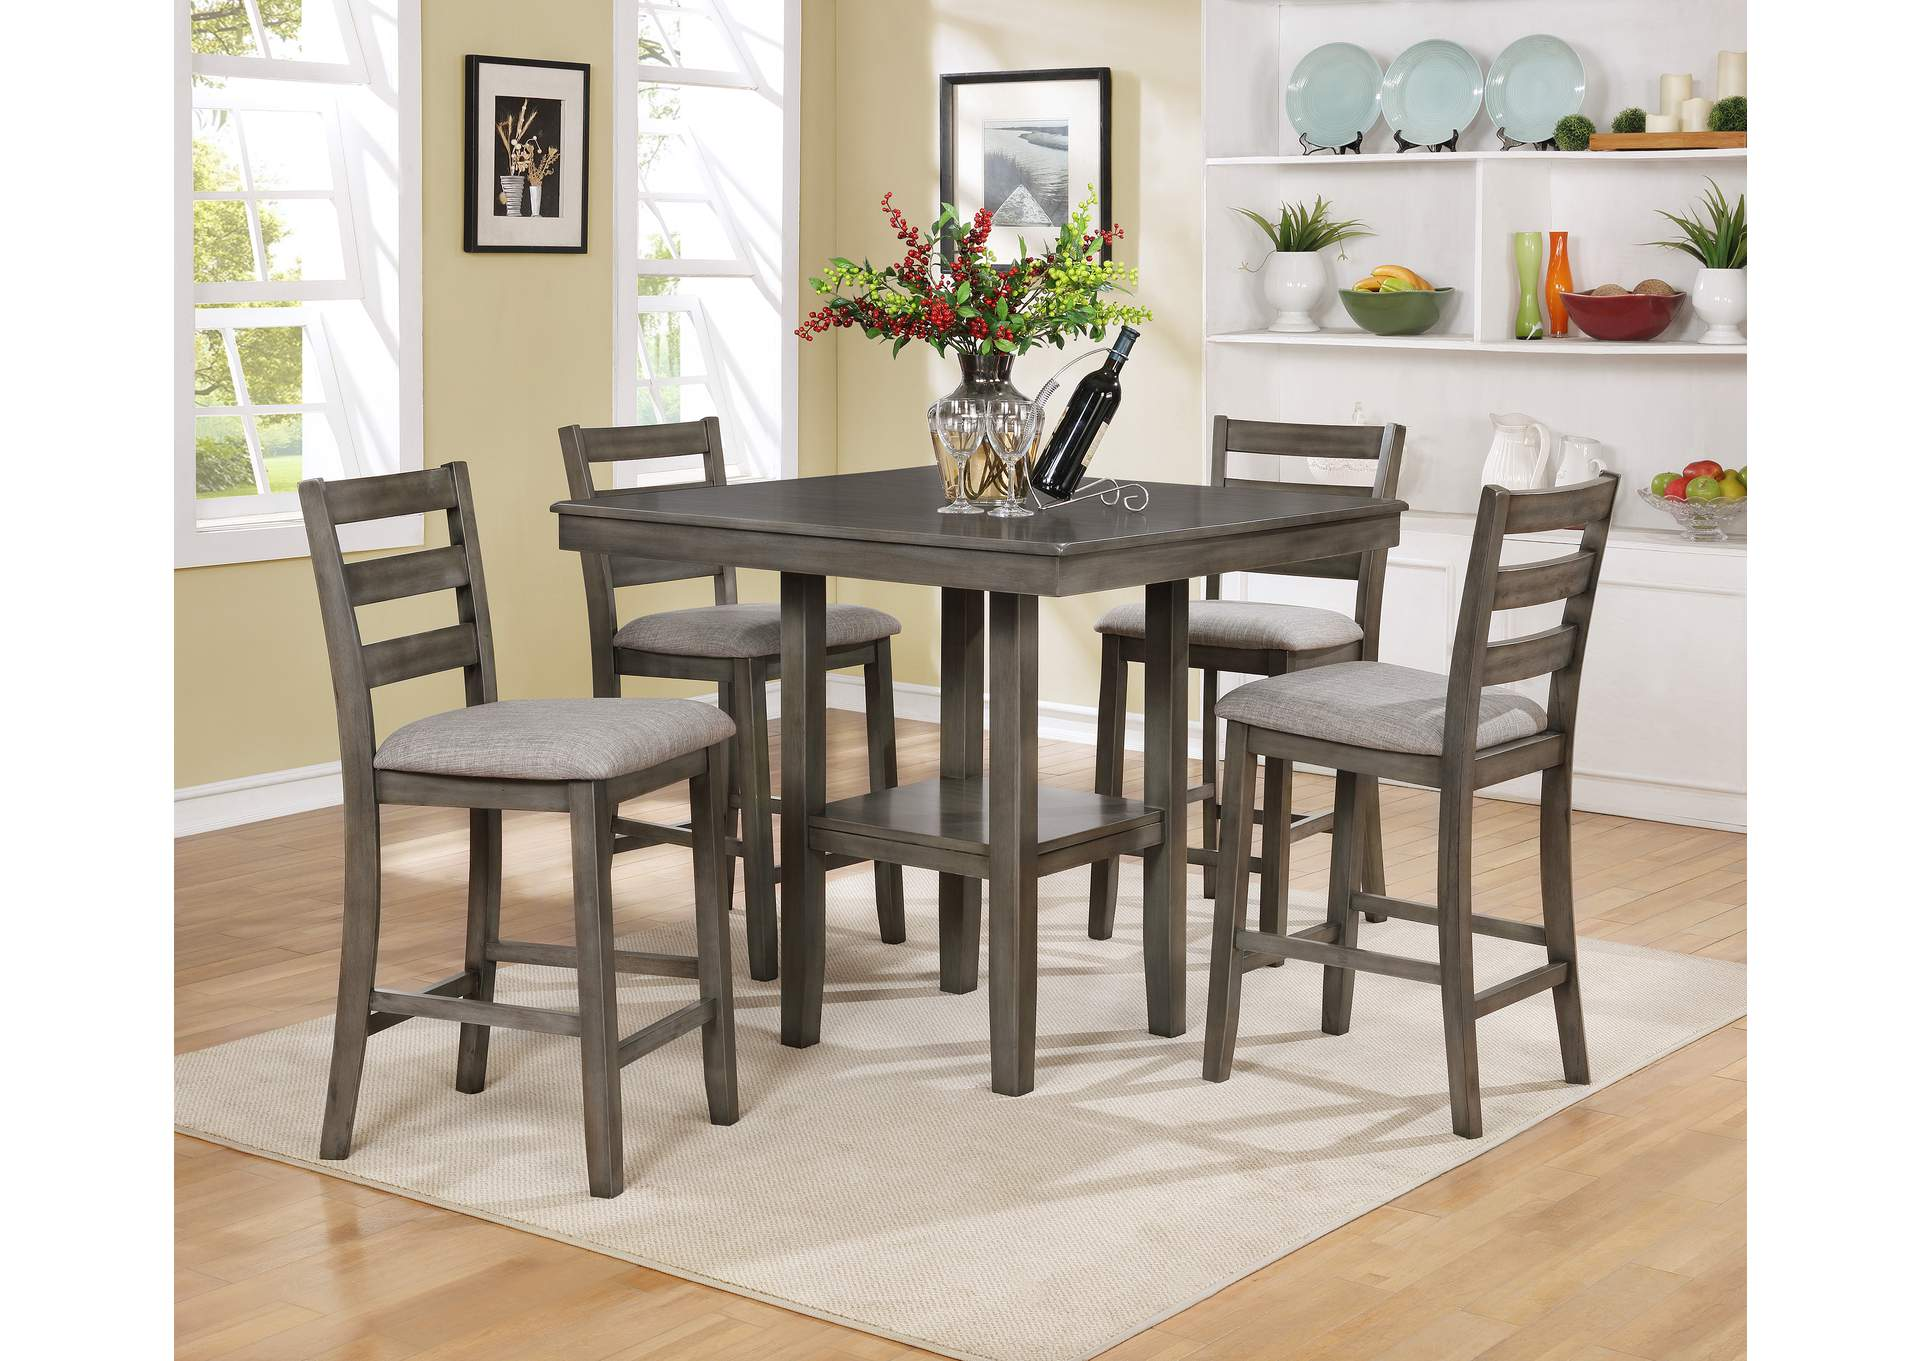 Tahoe Grey 5 Piece Set Counter Height Dining Table,Crown Mark